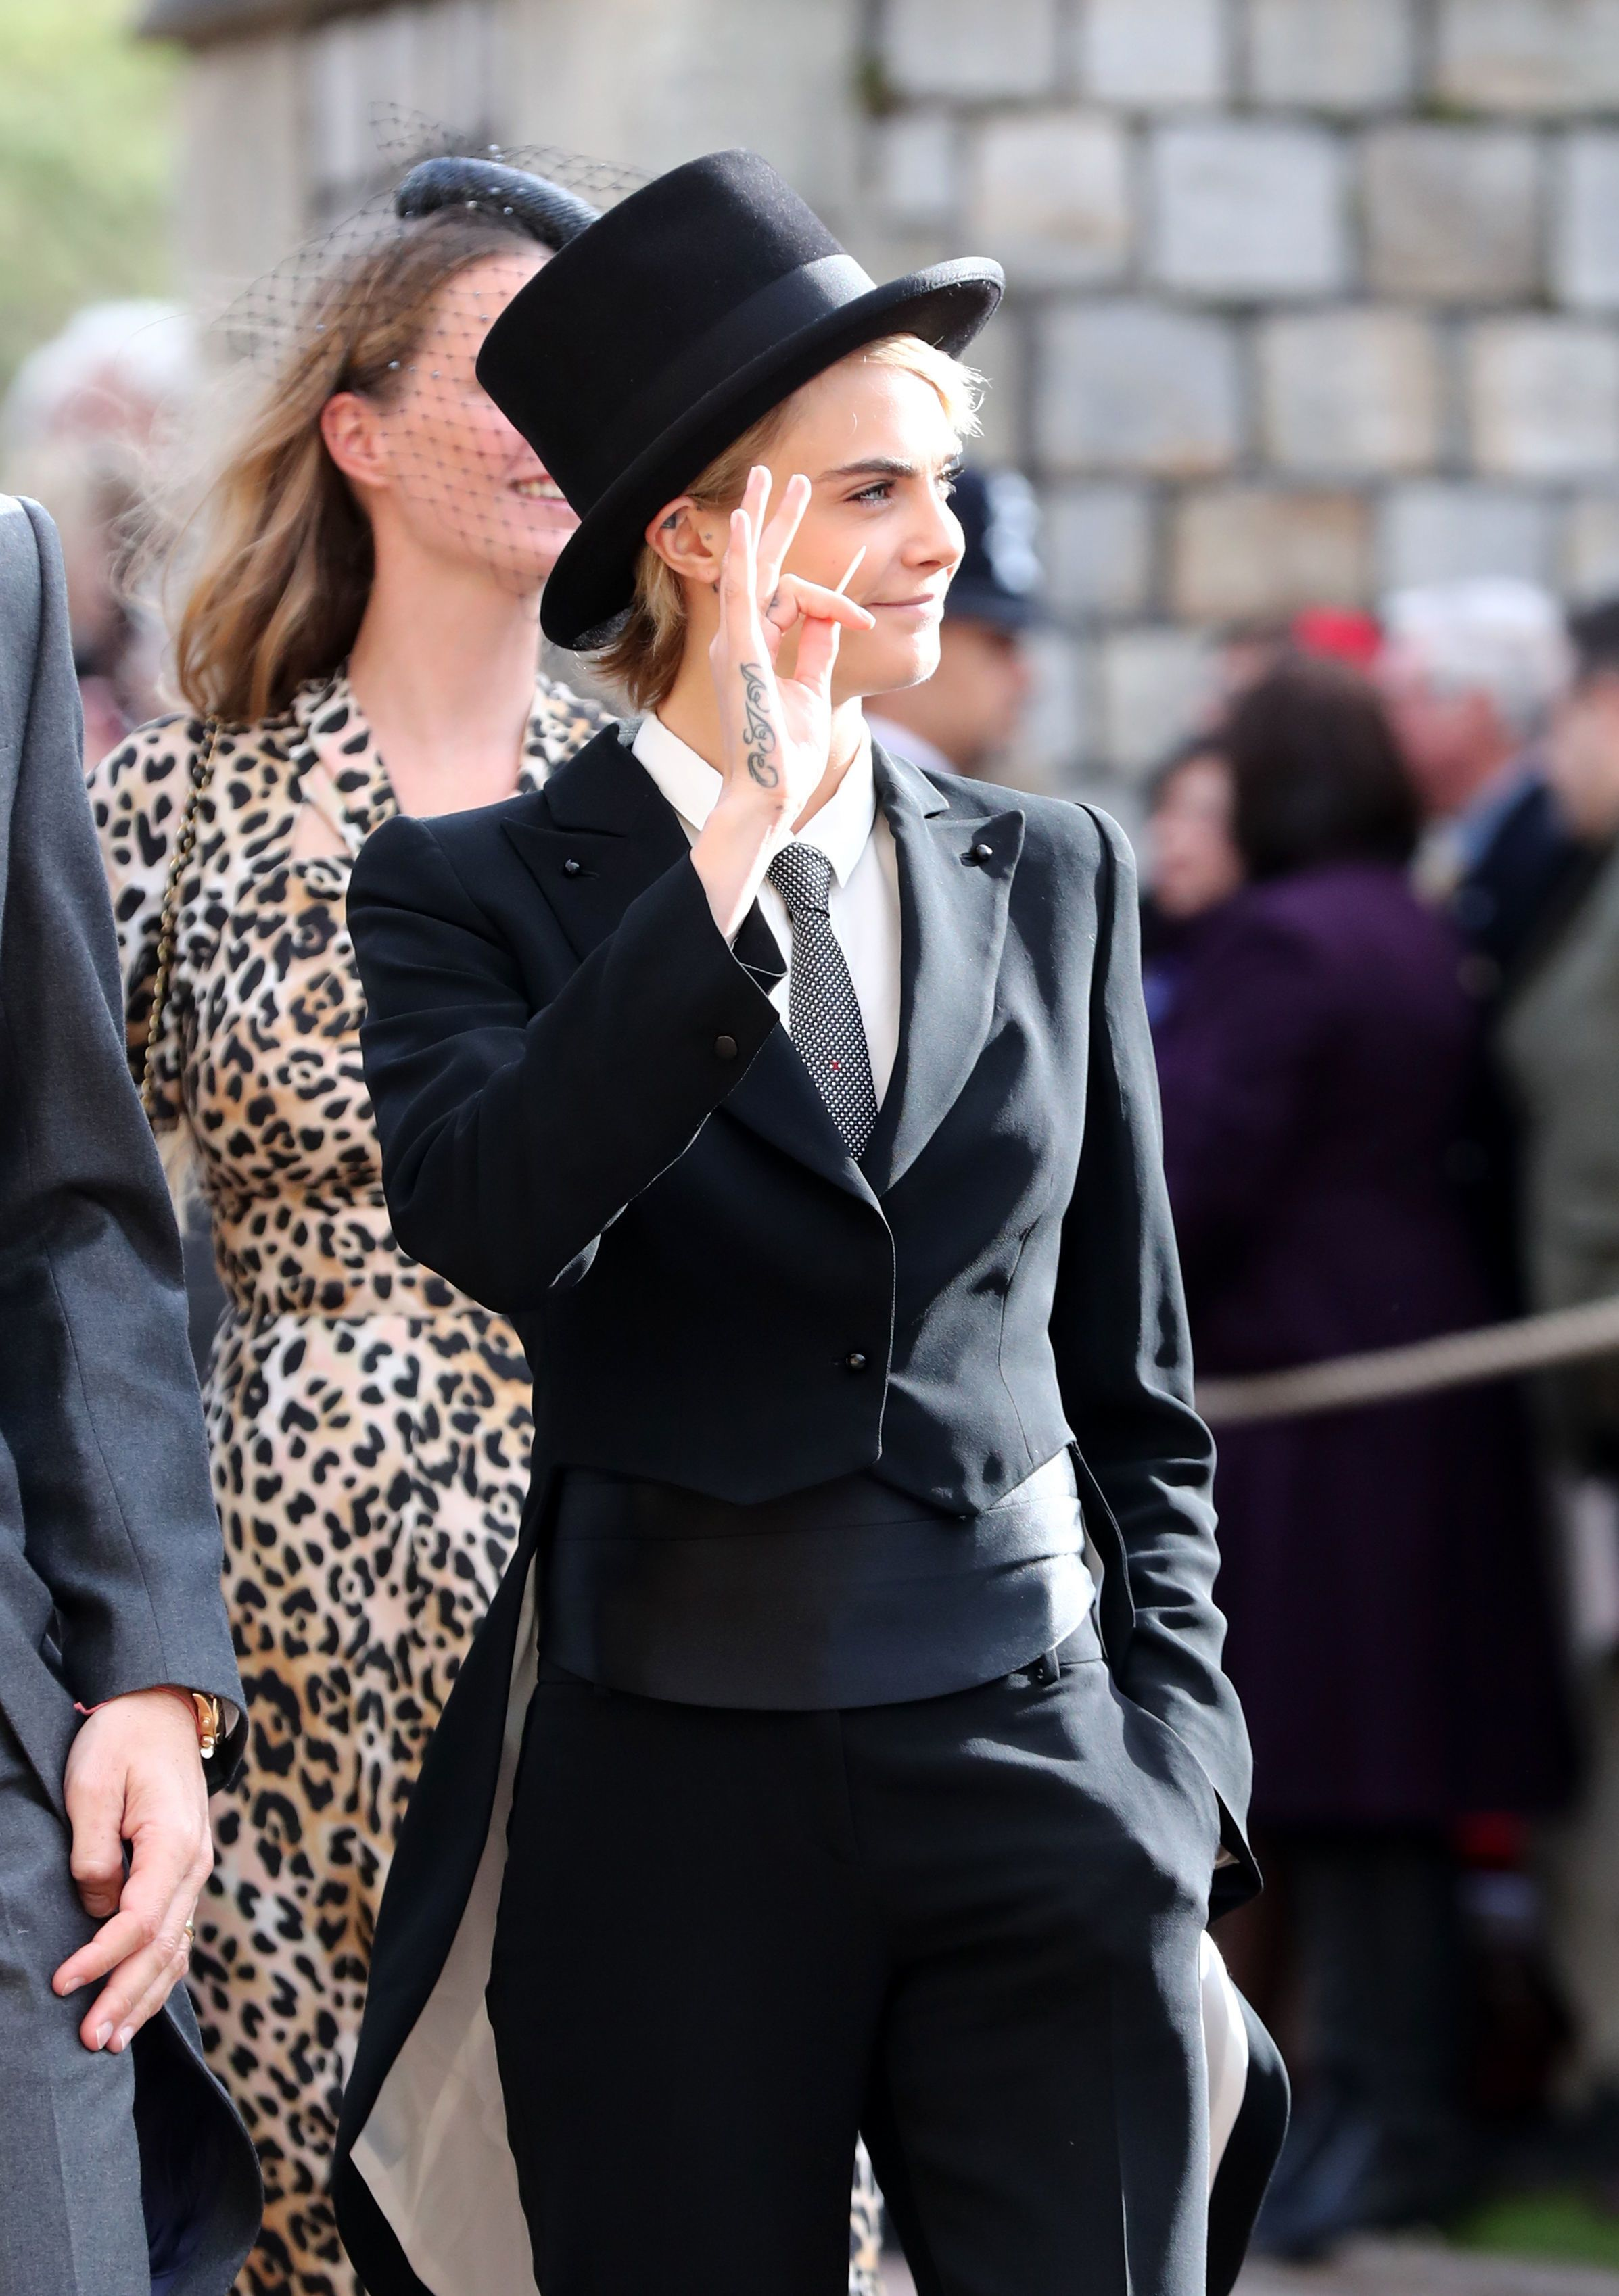 Cara Delevingne Rocked Up To The Royal Wedding Wearing An Actual Top Hat And Tails